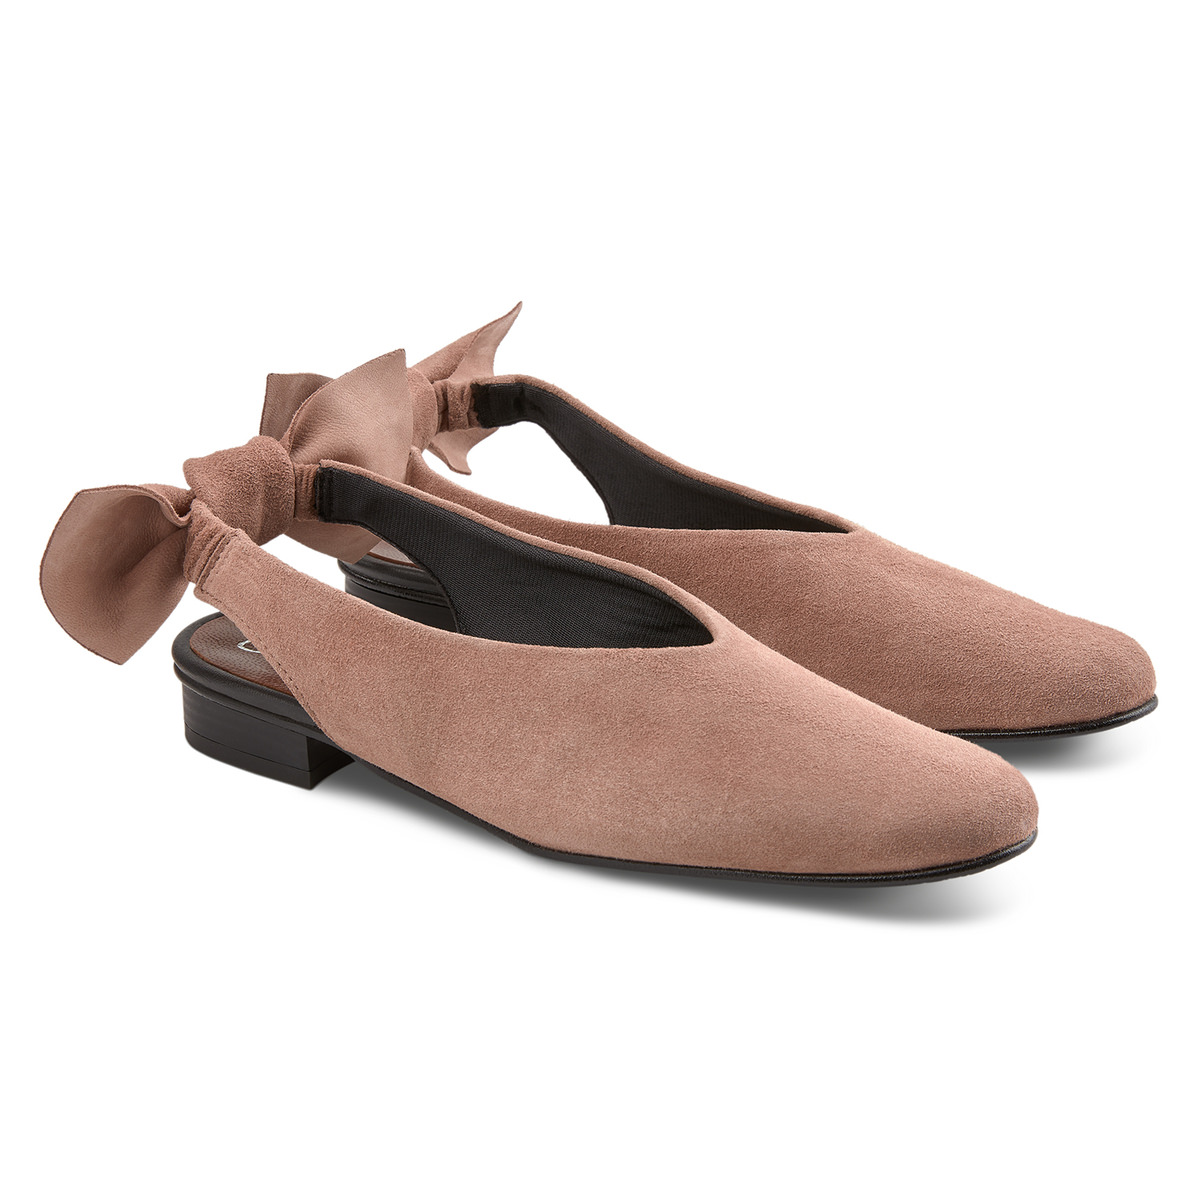 Backsling Slipper mit Schleife Nude